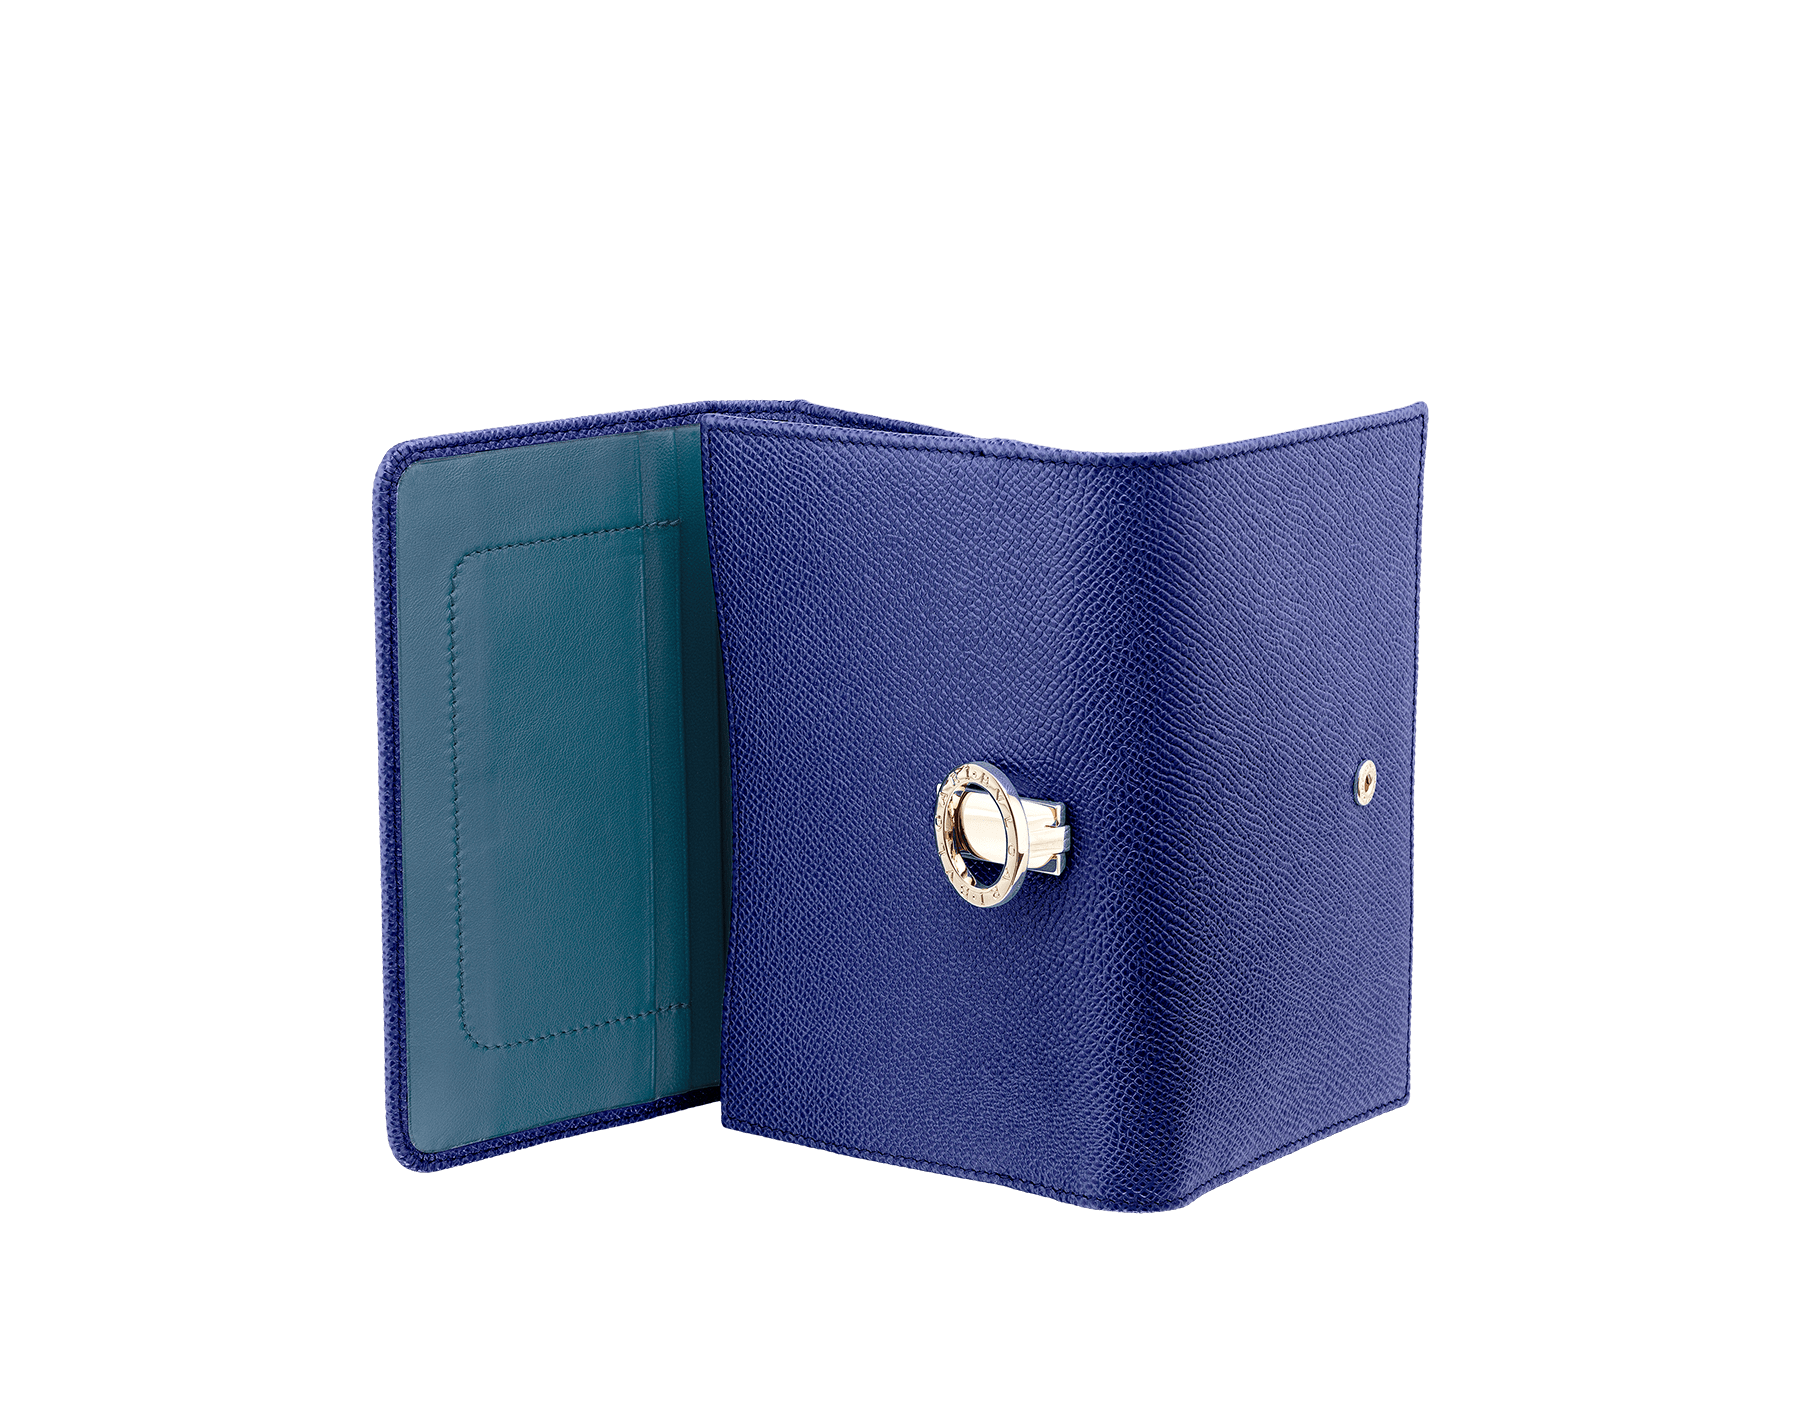 Compact pochette in royal sapphire bright grain calf leather, teal topaz nappa and plum amethyst nappa lining. Brass light gold plated hardware and iconic BVLGARI BVLGARI closure clip. Ten credit card slots, one ID compartment, one bill compartment, one coin pocket with flap, five addictional compartments. Also available in other colours. 14,5 x 10 cm. - 5.7 x 3.9'' 579-COMPPOCHETTE image 3